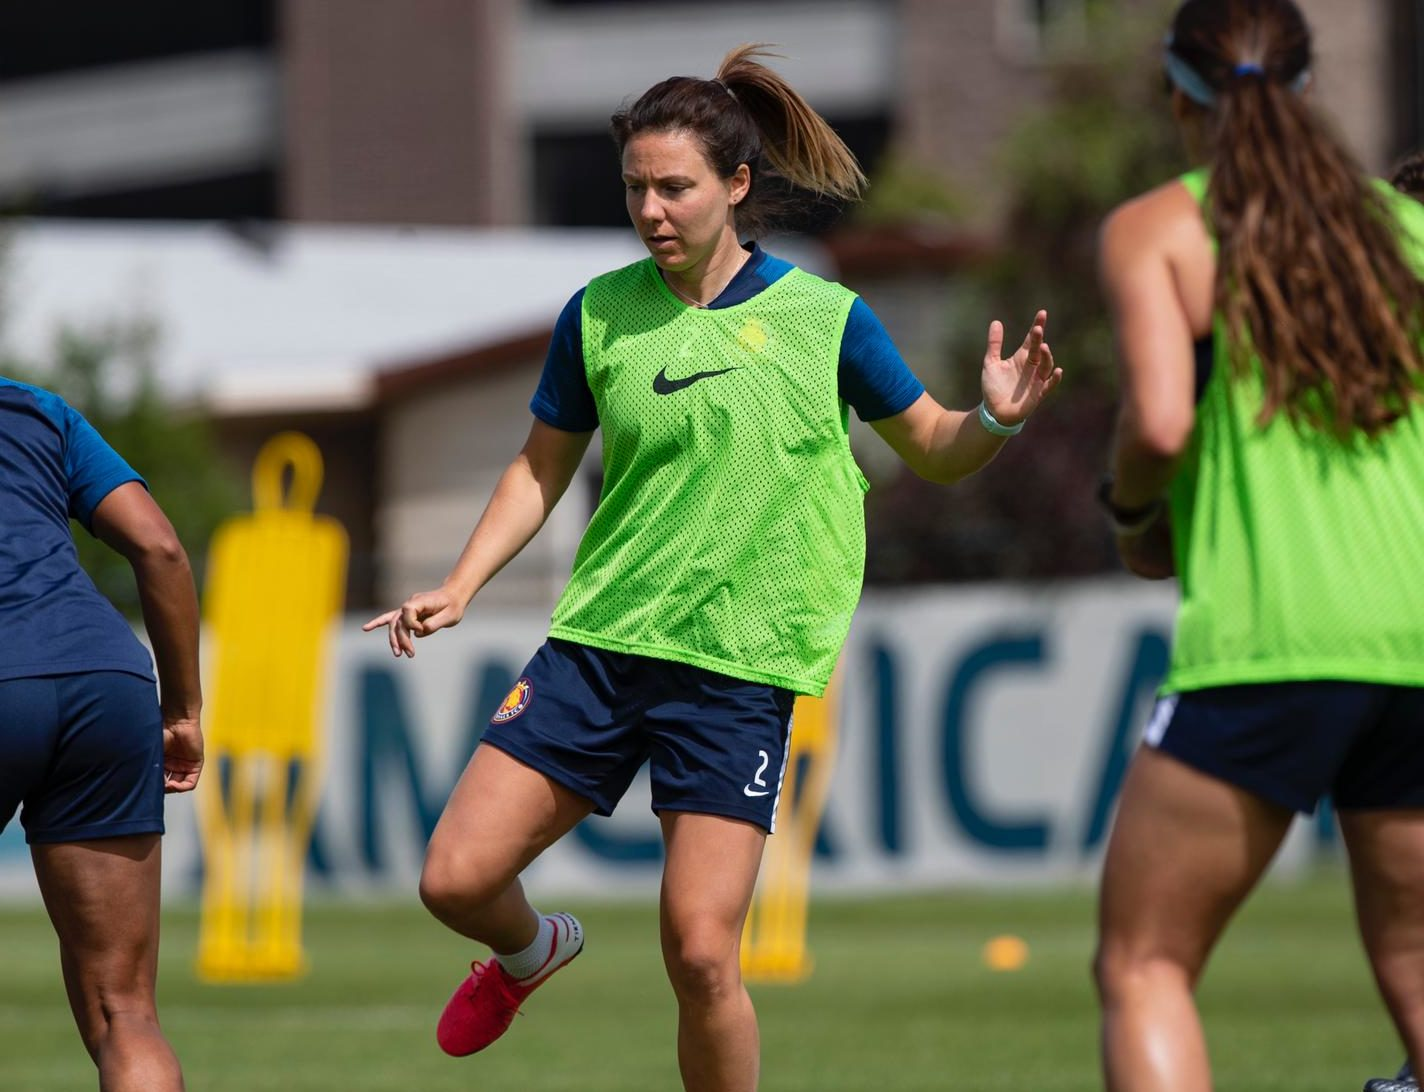 Utah Royals are back in training.